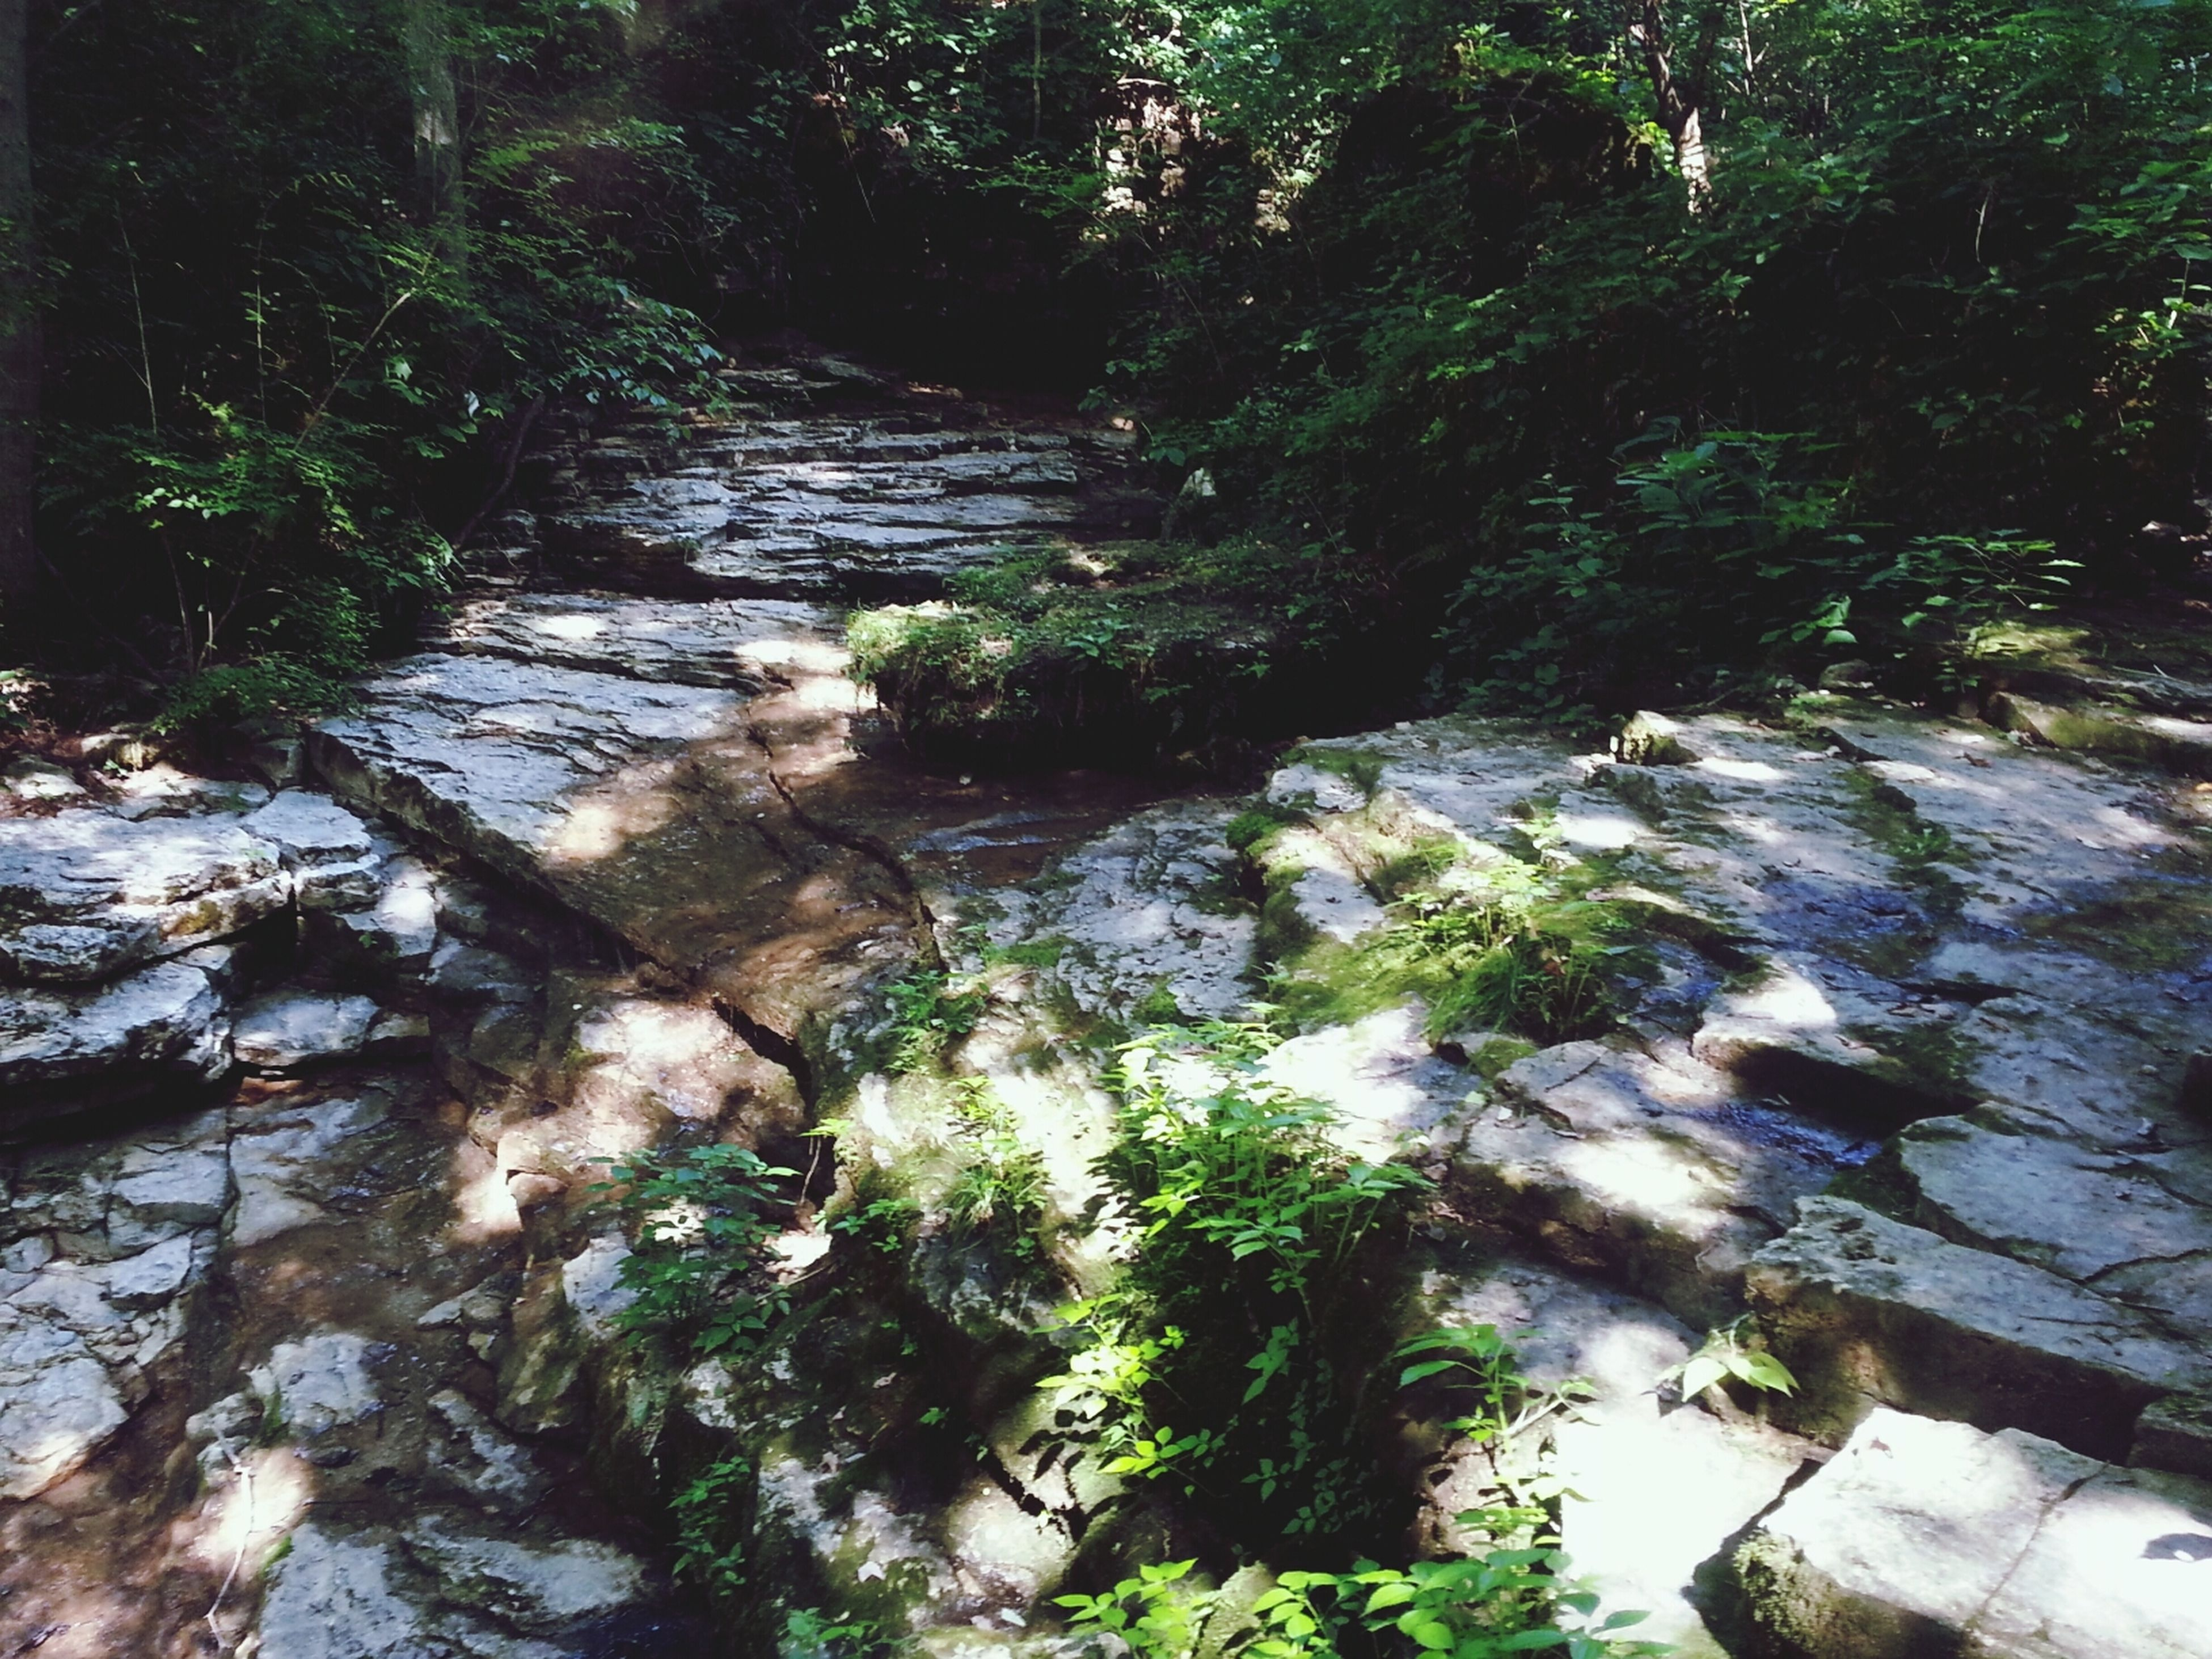 tree, forest, water, nature, growth, tranquility, beauty in nature, rock - object, stream, tranquil scene, scenics, moss, green color, flowing water, plant, high angle view, tree trunk, river, day, outdoors